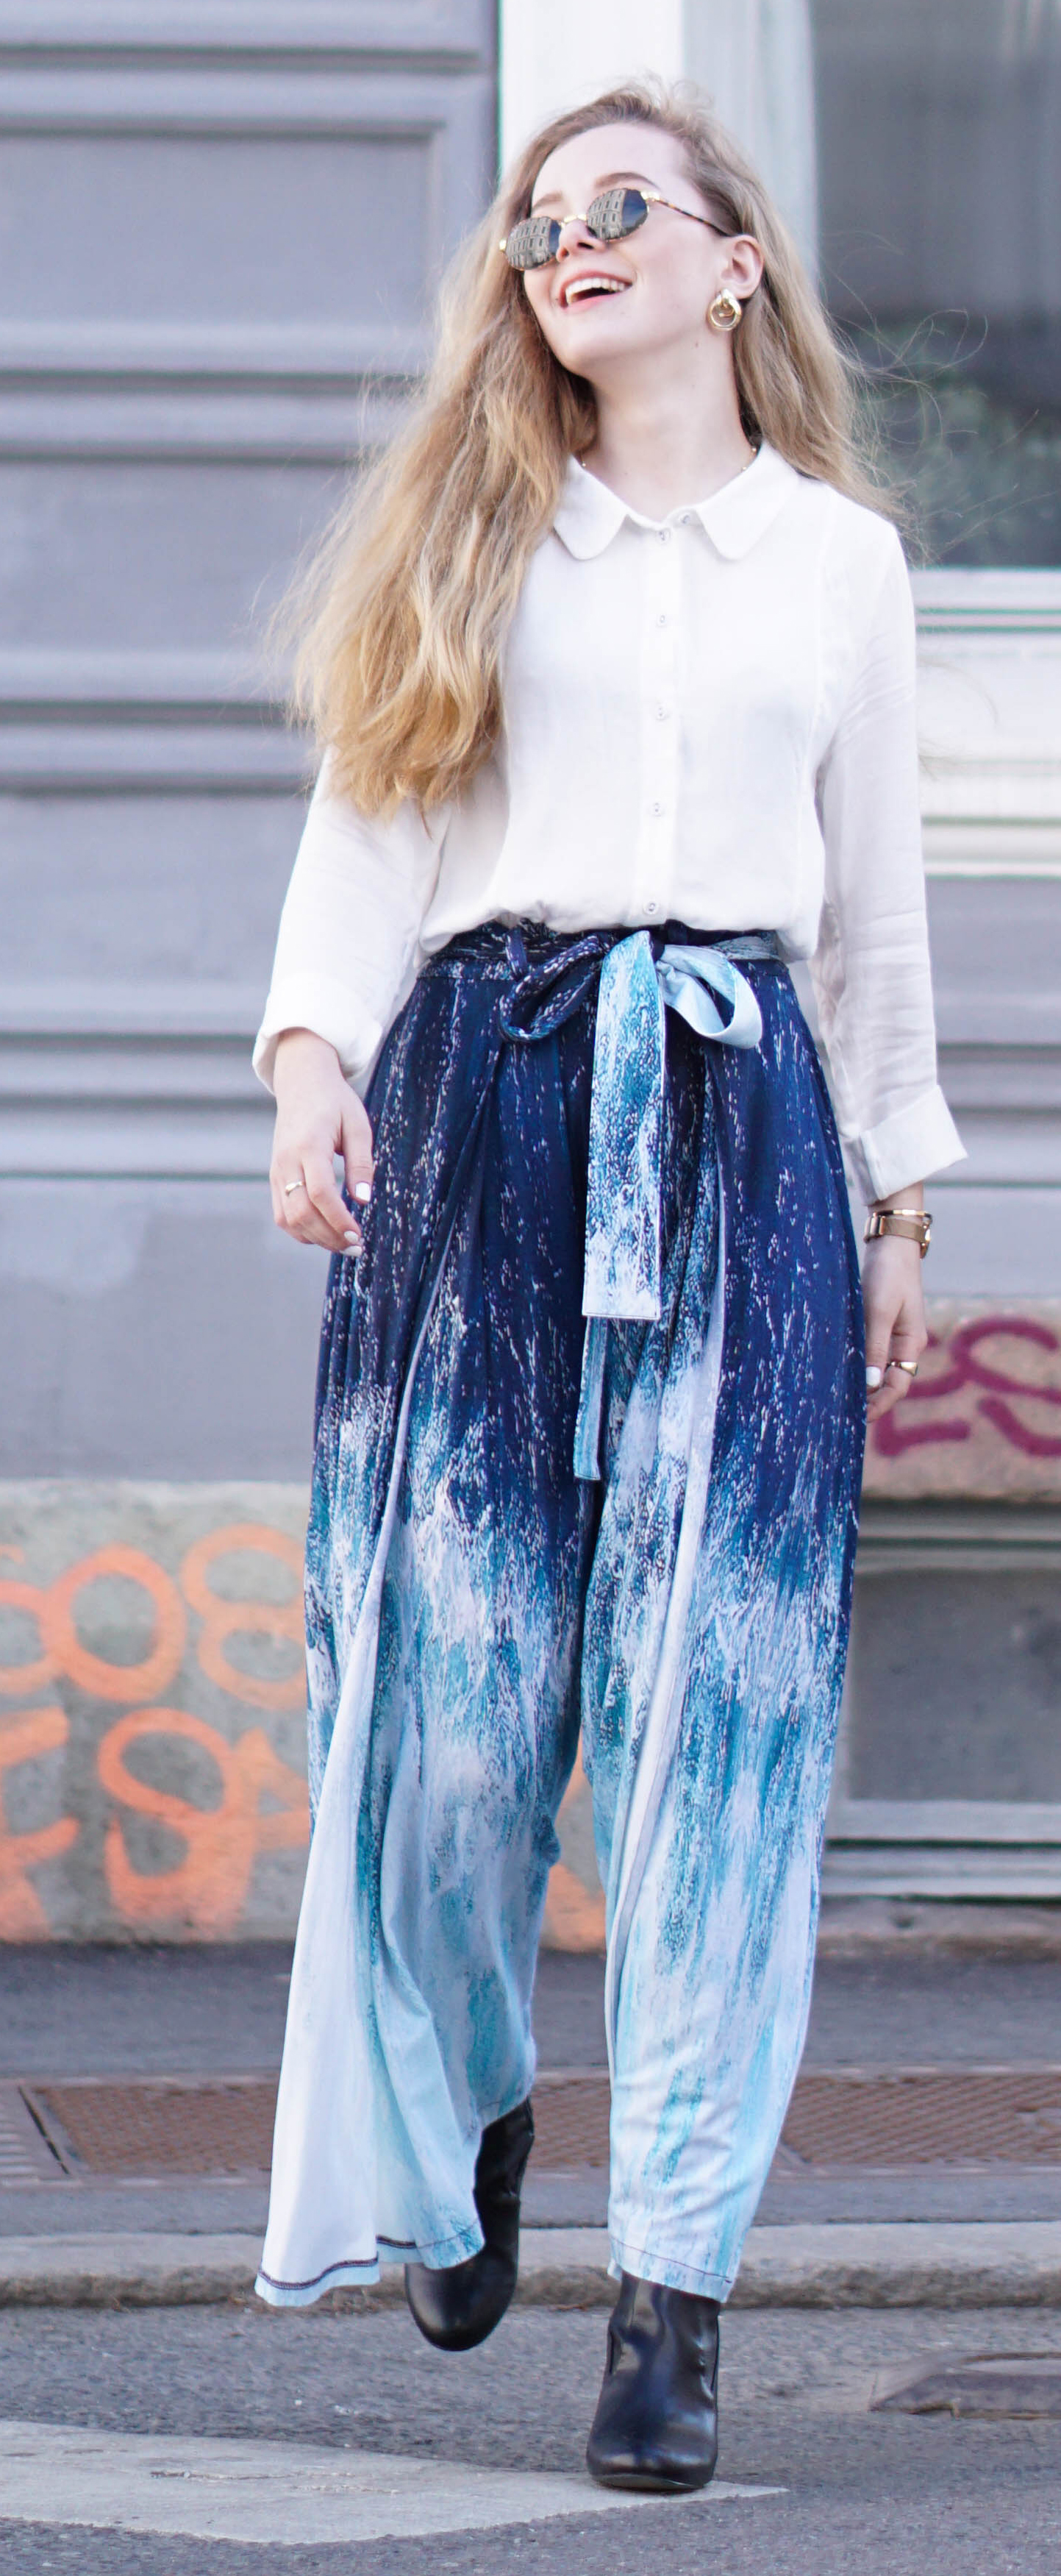 3 ways to style France pants